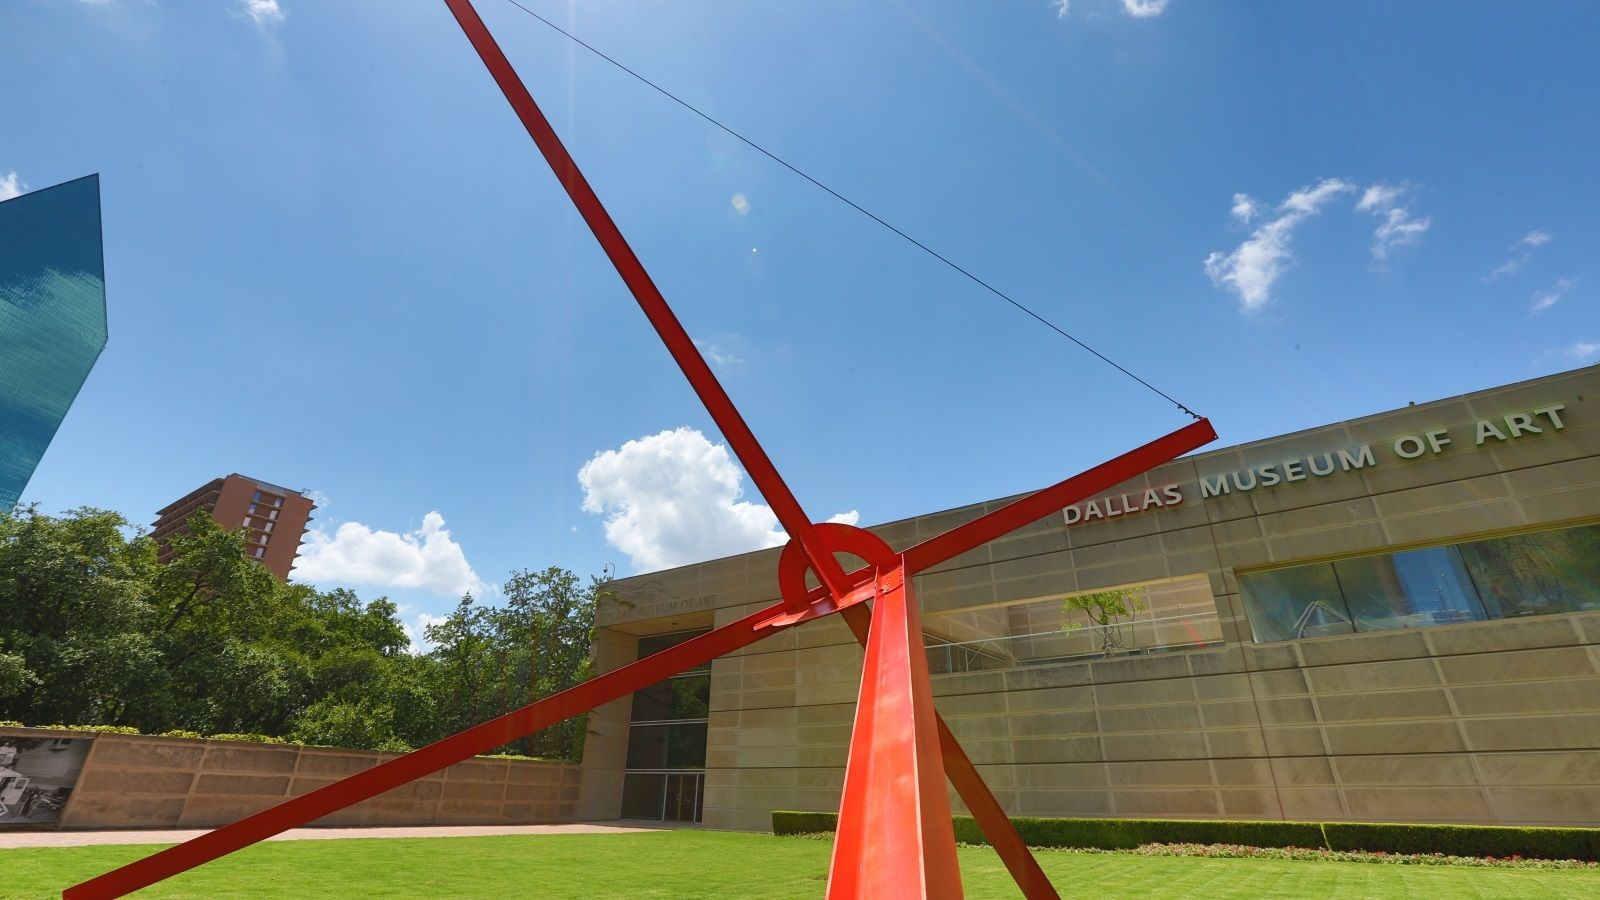 Fun Things to Do in Dallas - Dallas Museum of Art